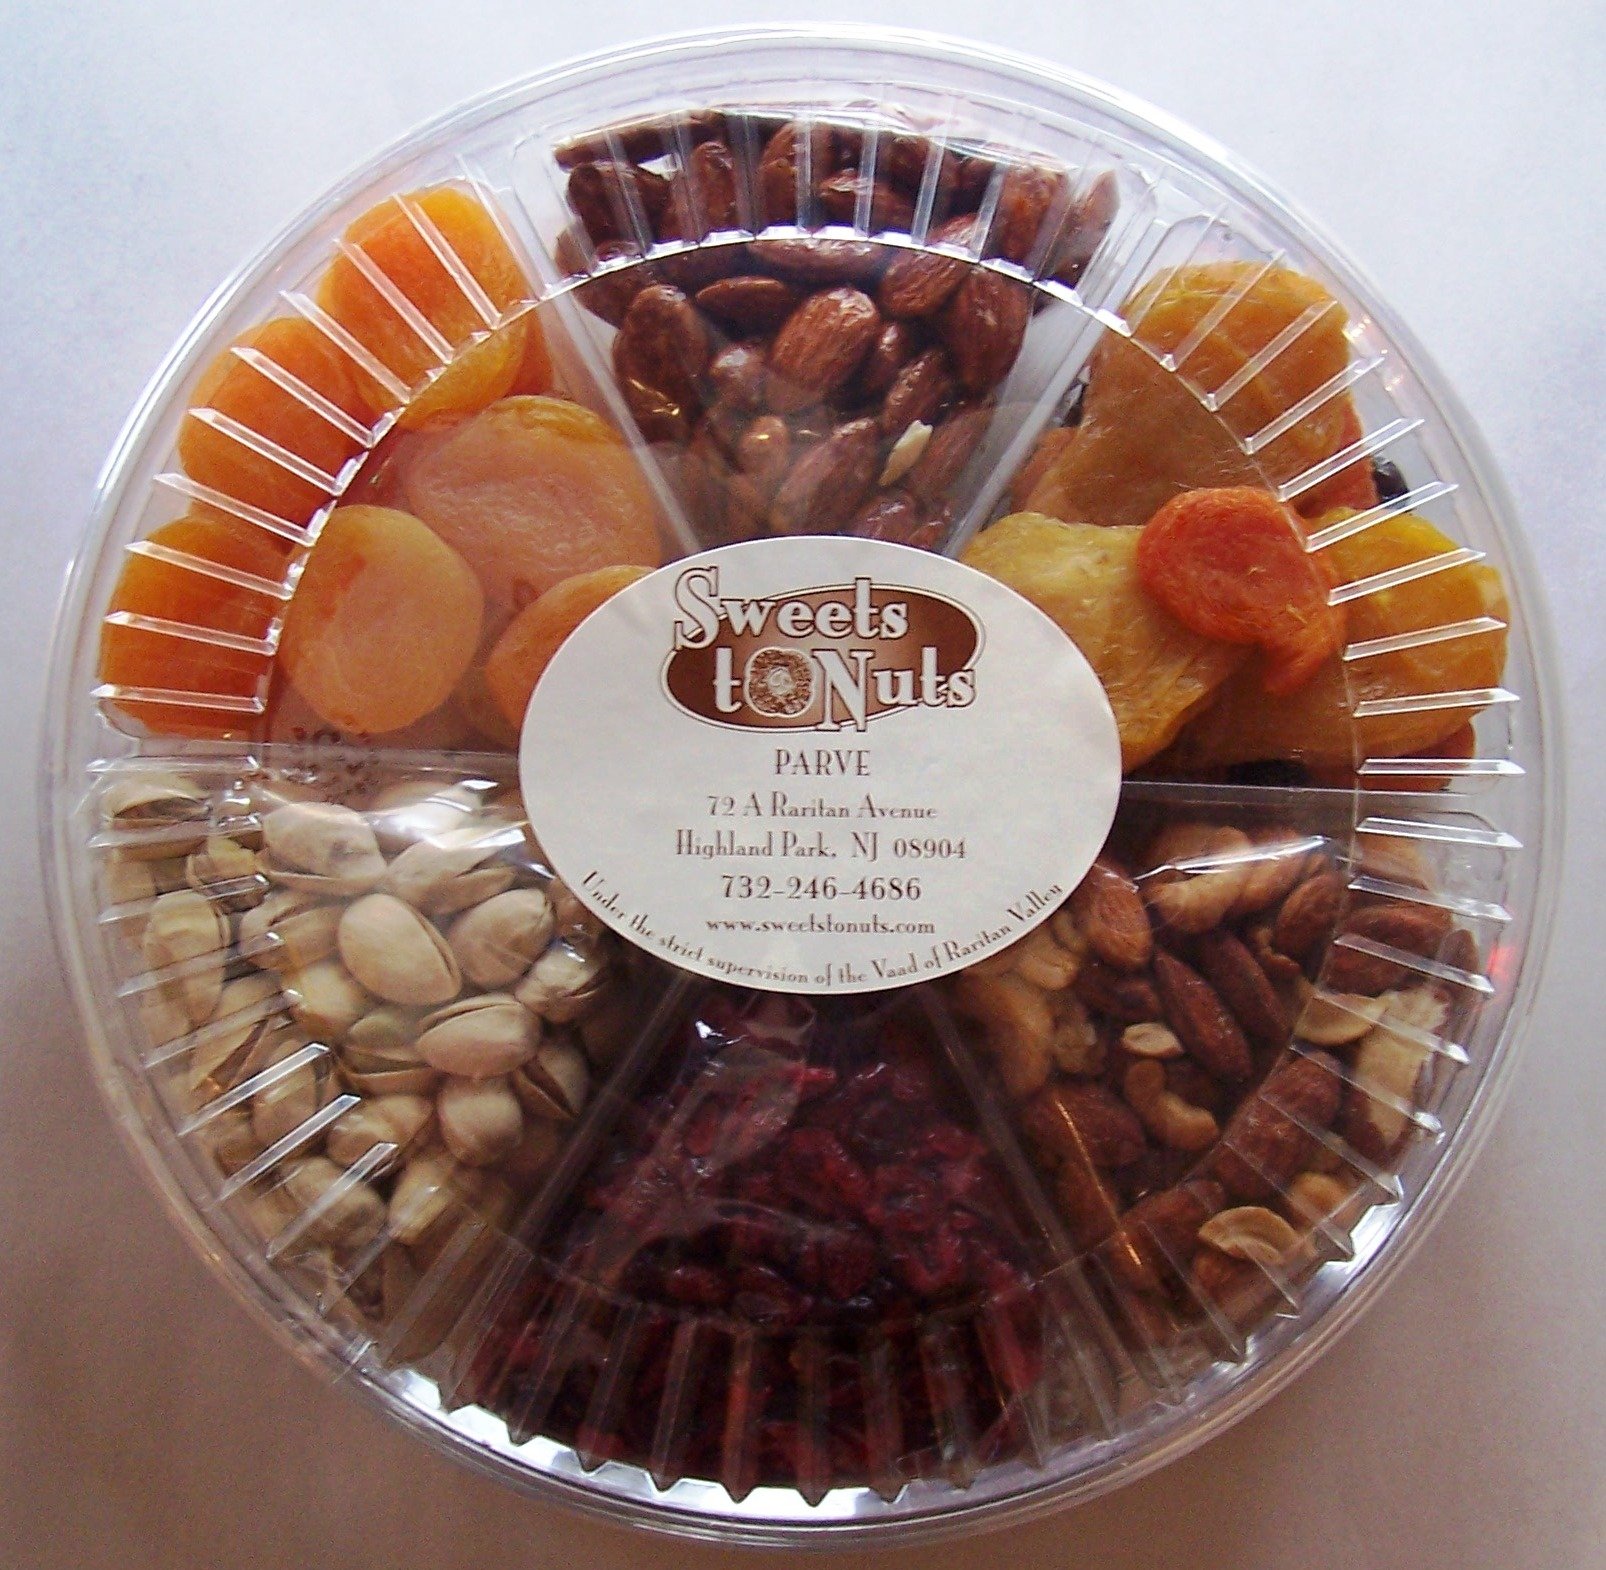 Passover Deluxe Fruit and Nut Platter